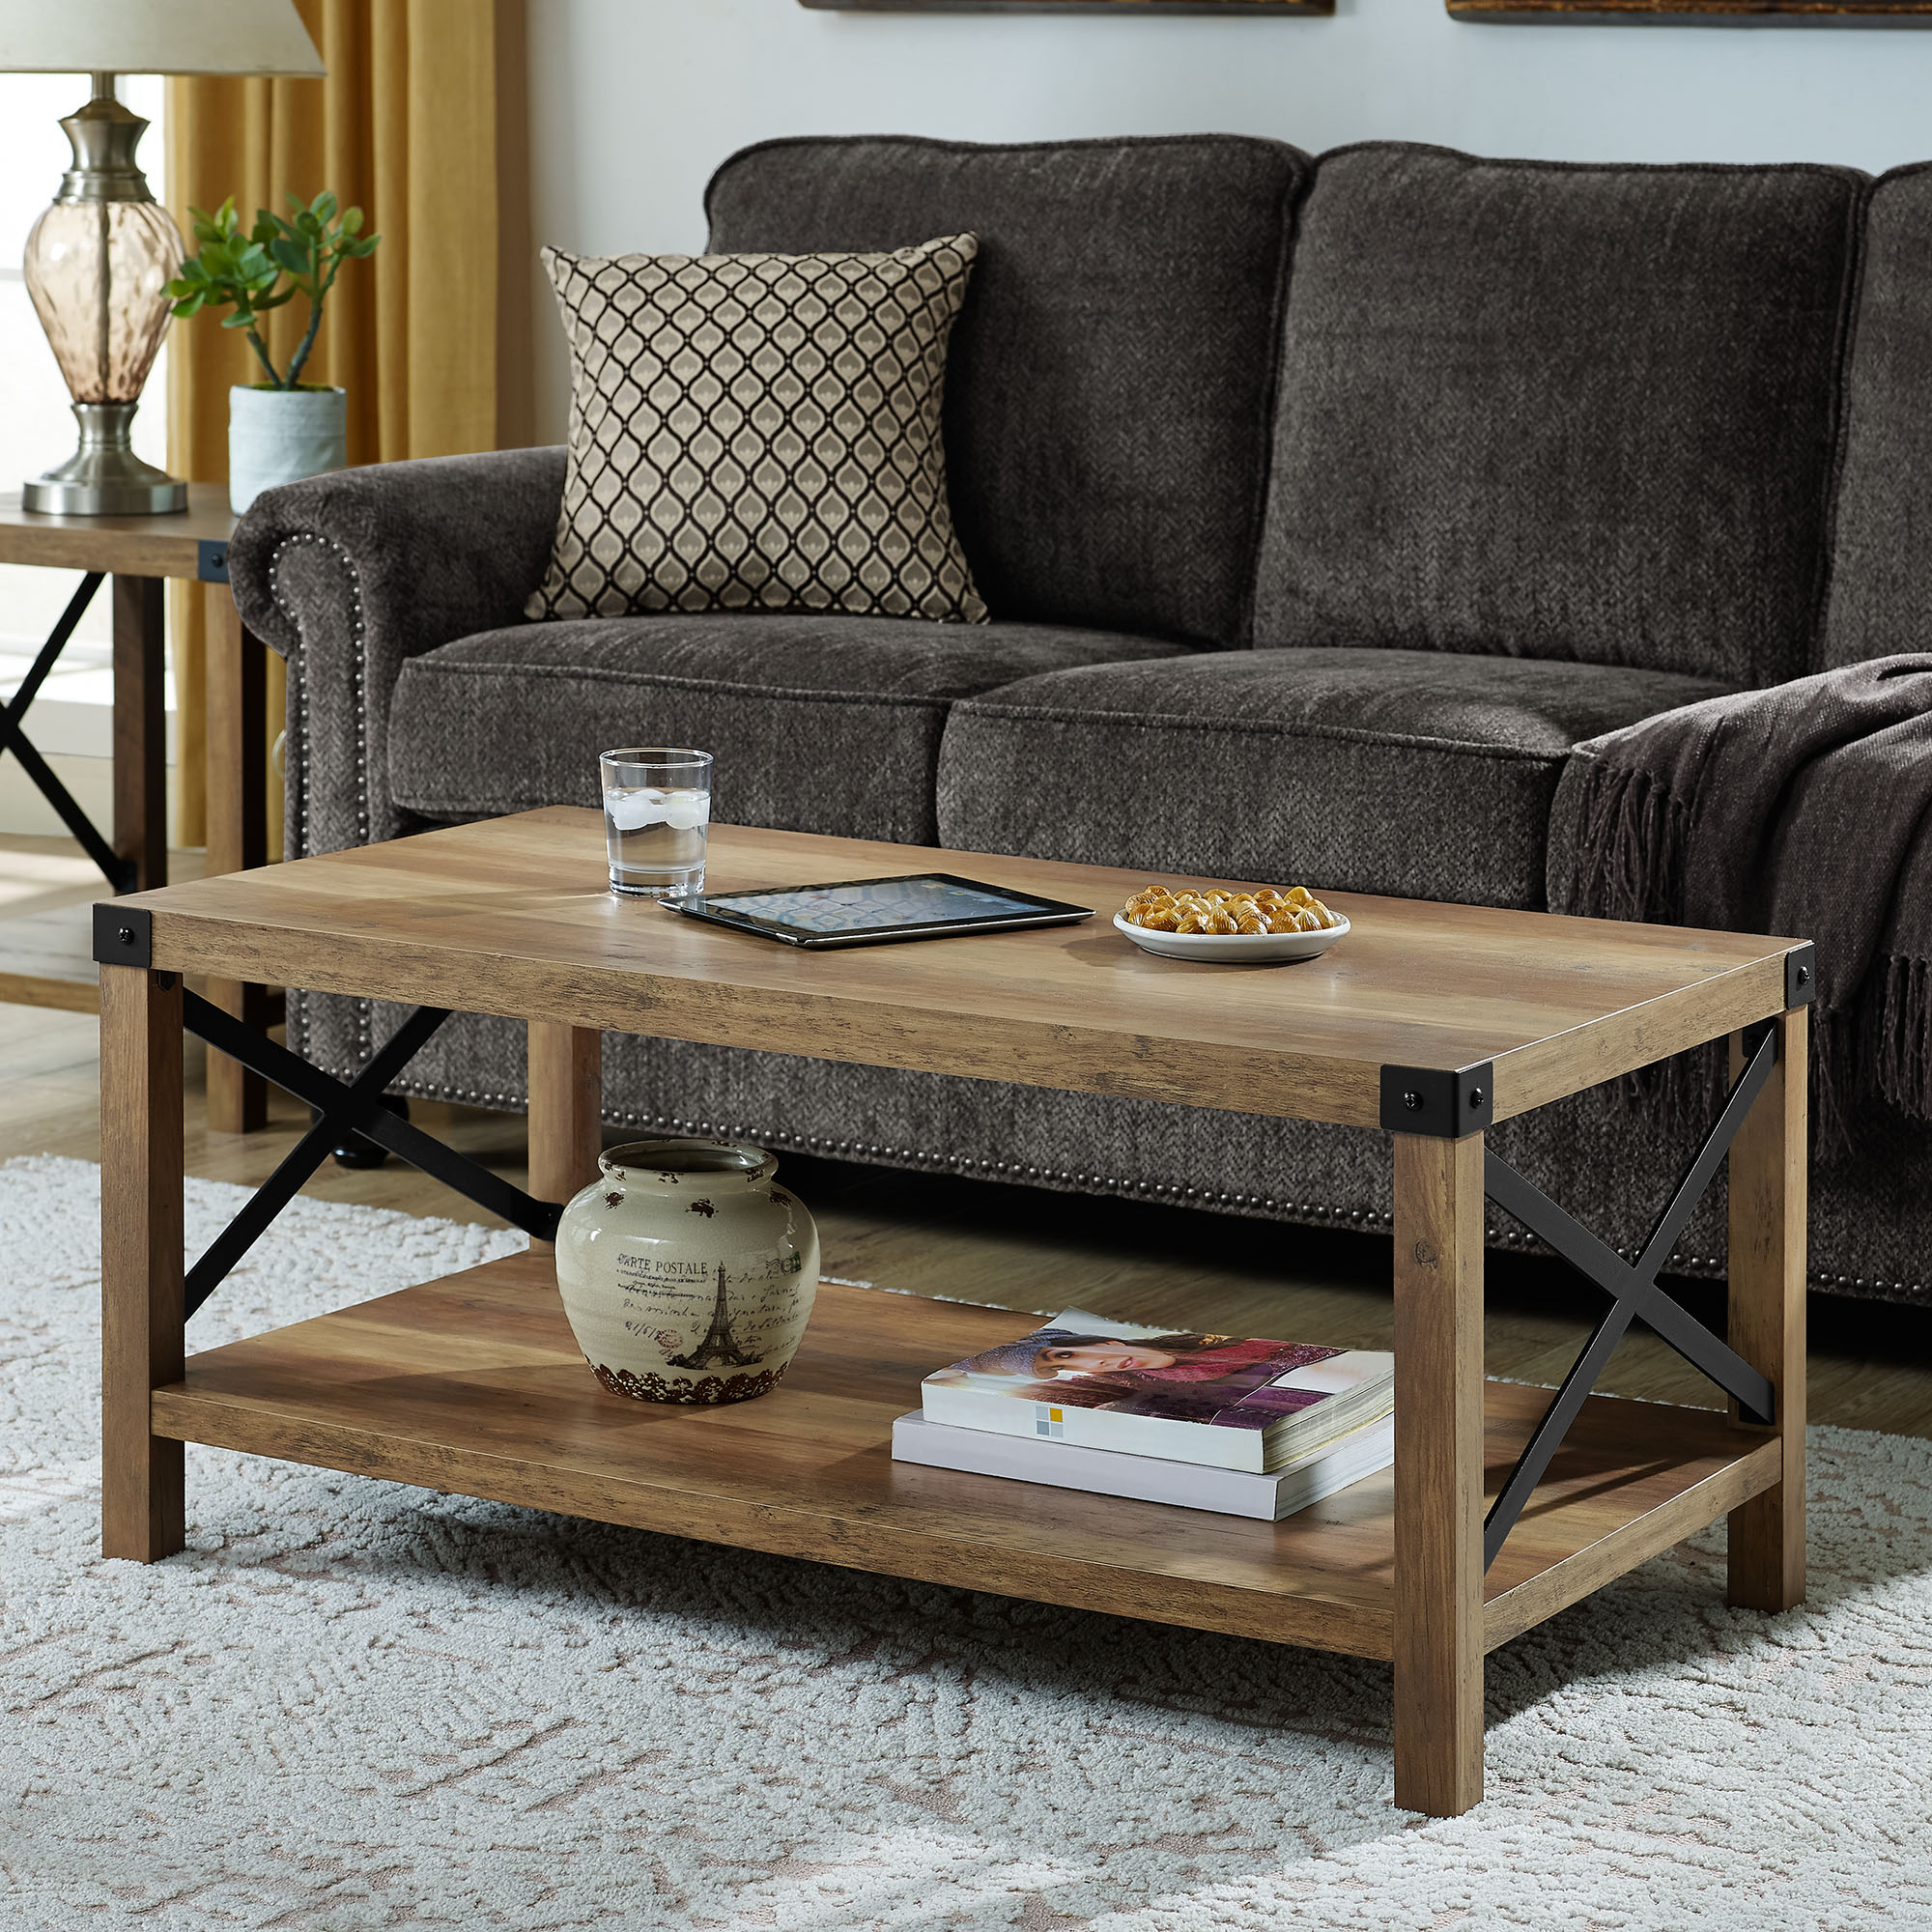 "Manor Park 40"" Rustic Urban Industrial Metal X Coffee Table - Reclaimed Farmhouse/Black"